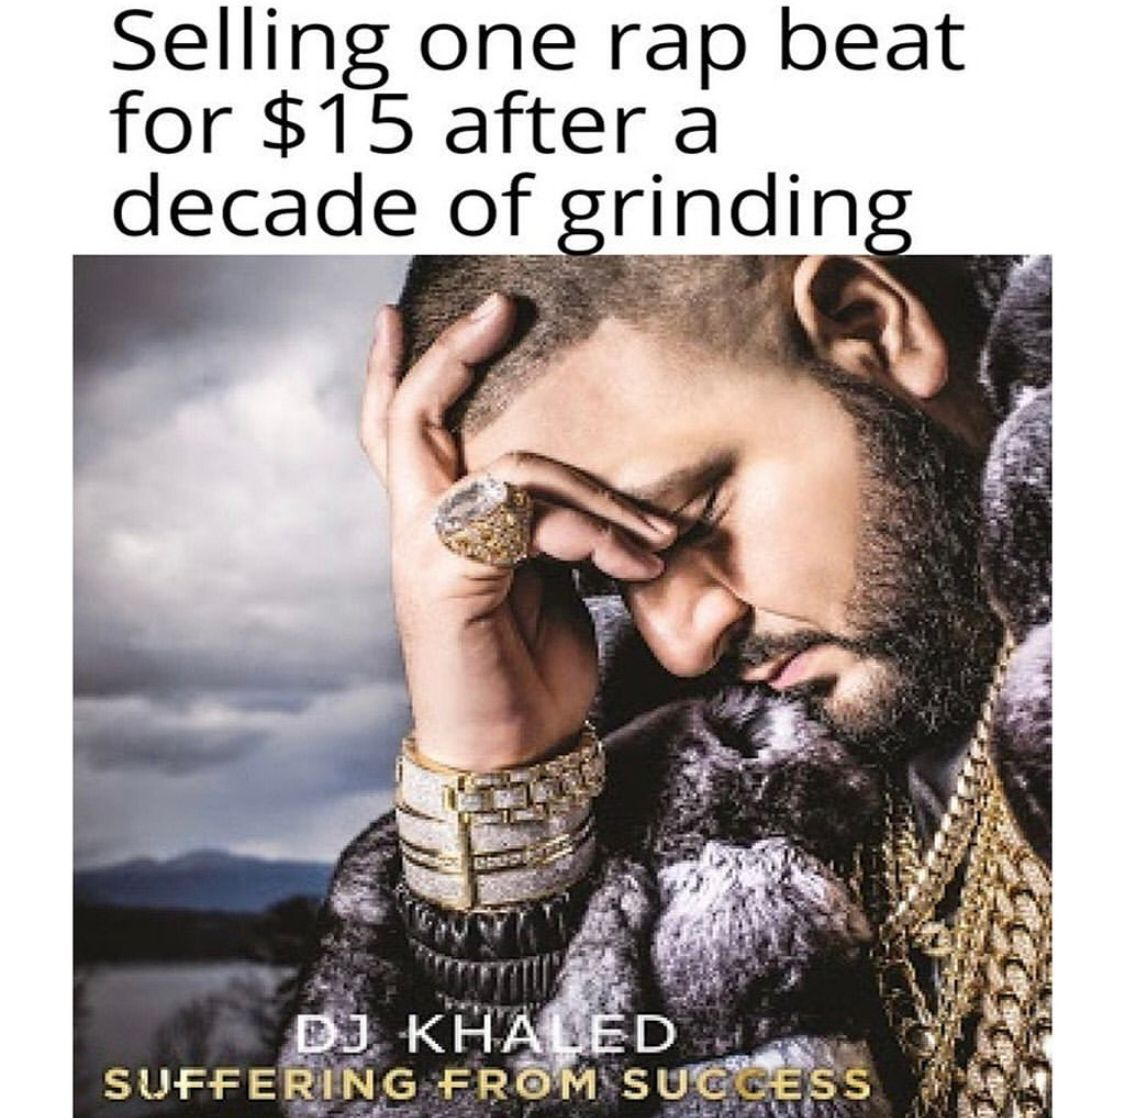 Pin By Soundoracle On Producers Pewdiepie Memes Rap Beats